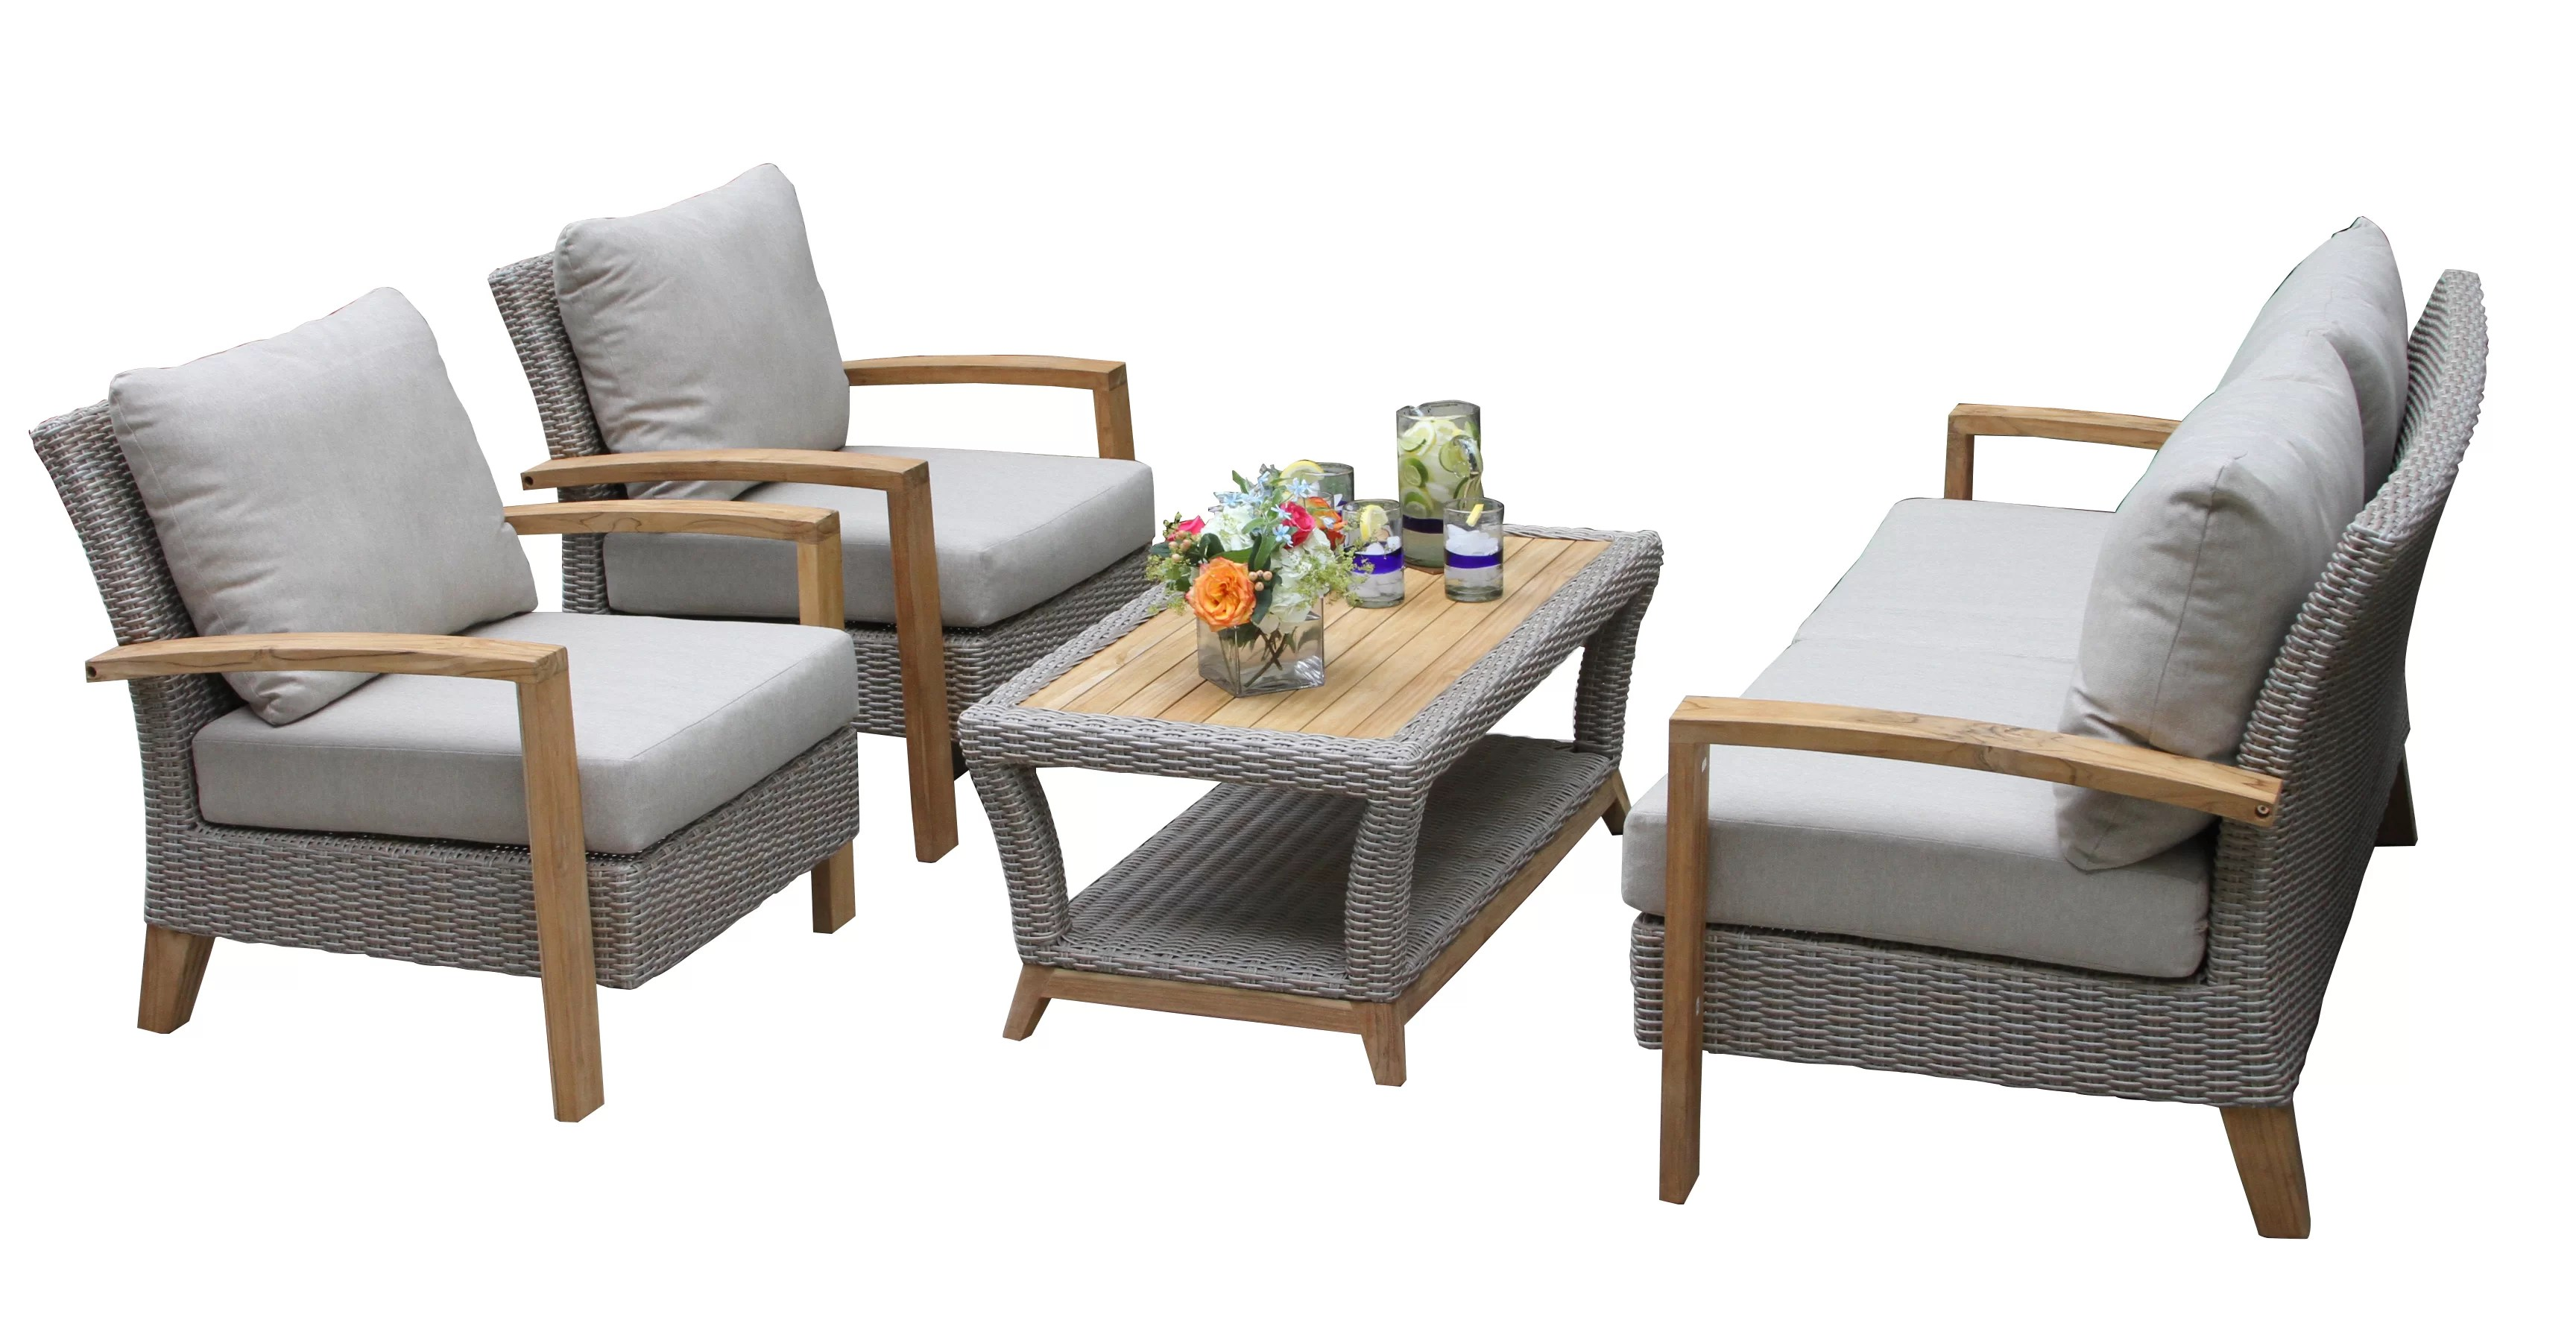 Rattan Sofa Dillard 4 Piece Rattan Sofa Seating Group With Cushions